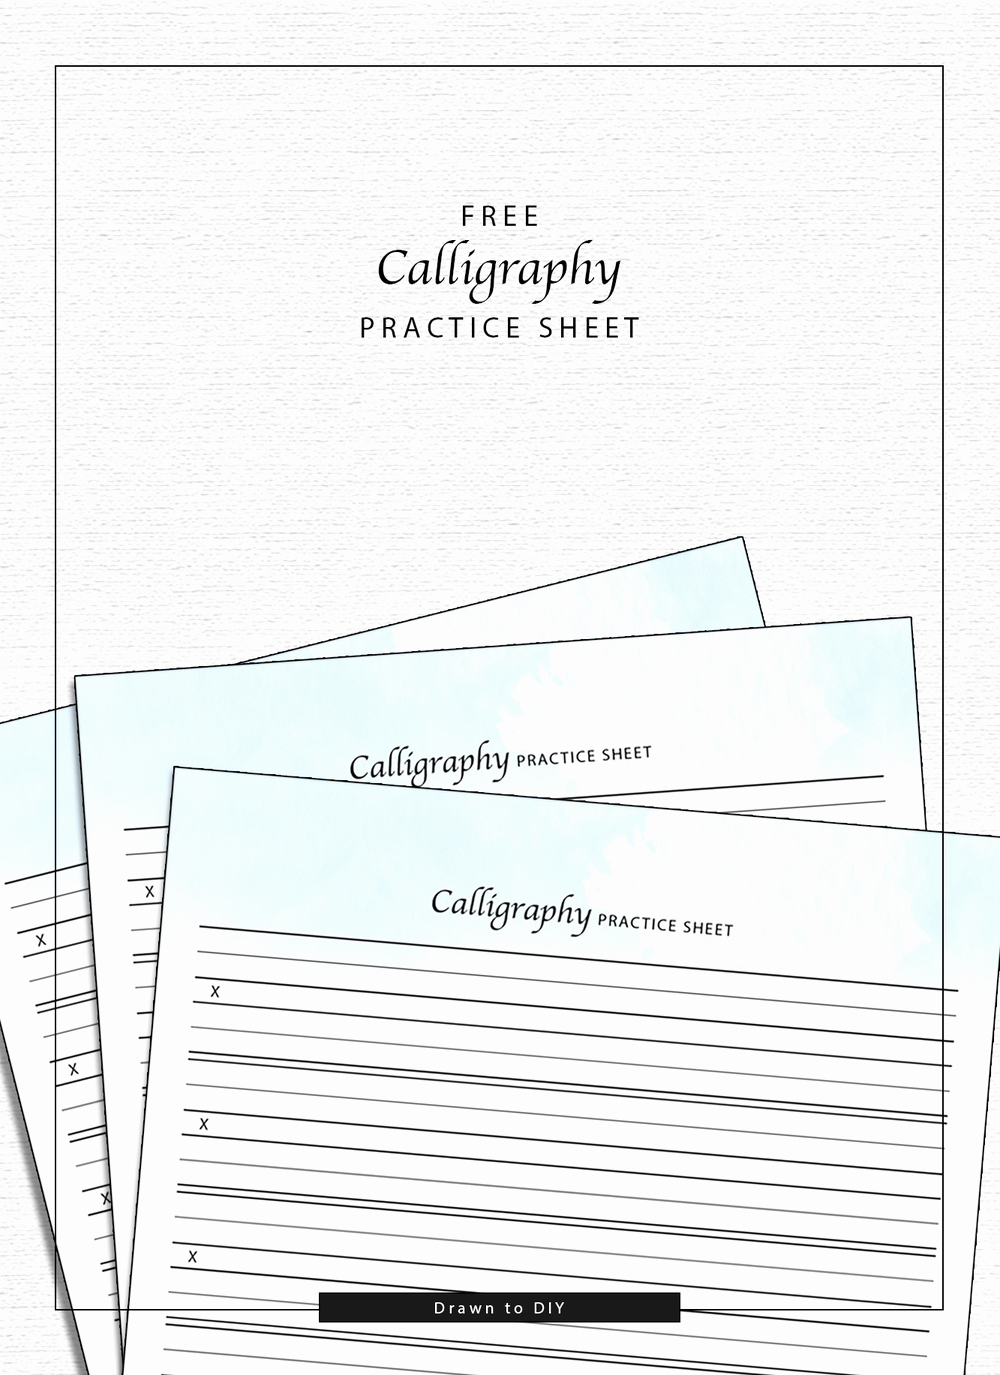 Free Calligraphy Worksheets Printable Beautiful Calligraphy Practice Sheet — Drawn to Diy